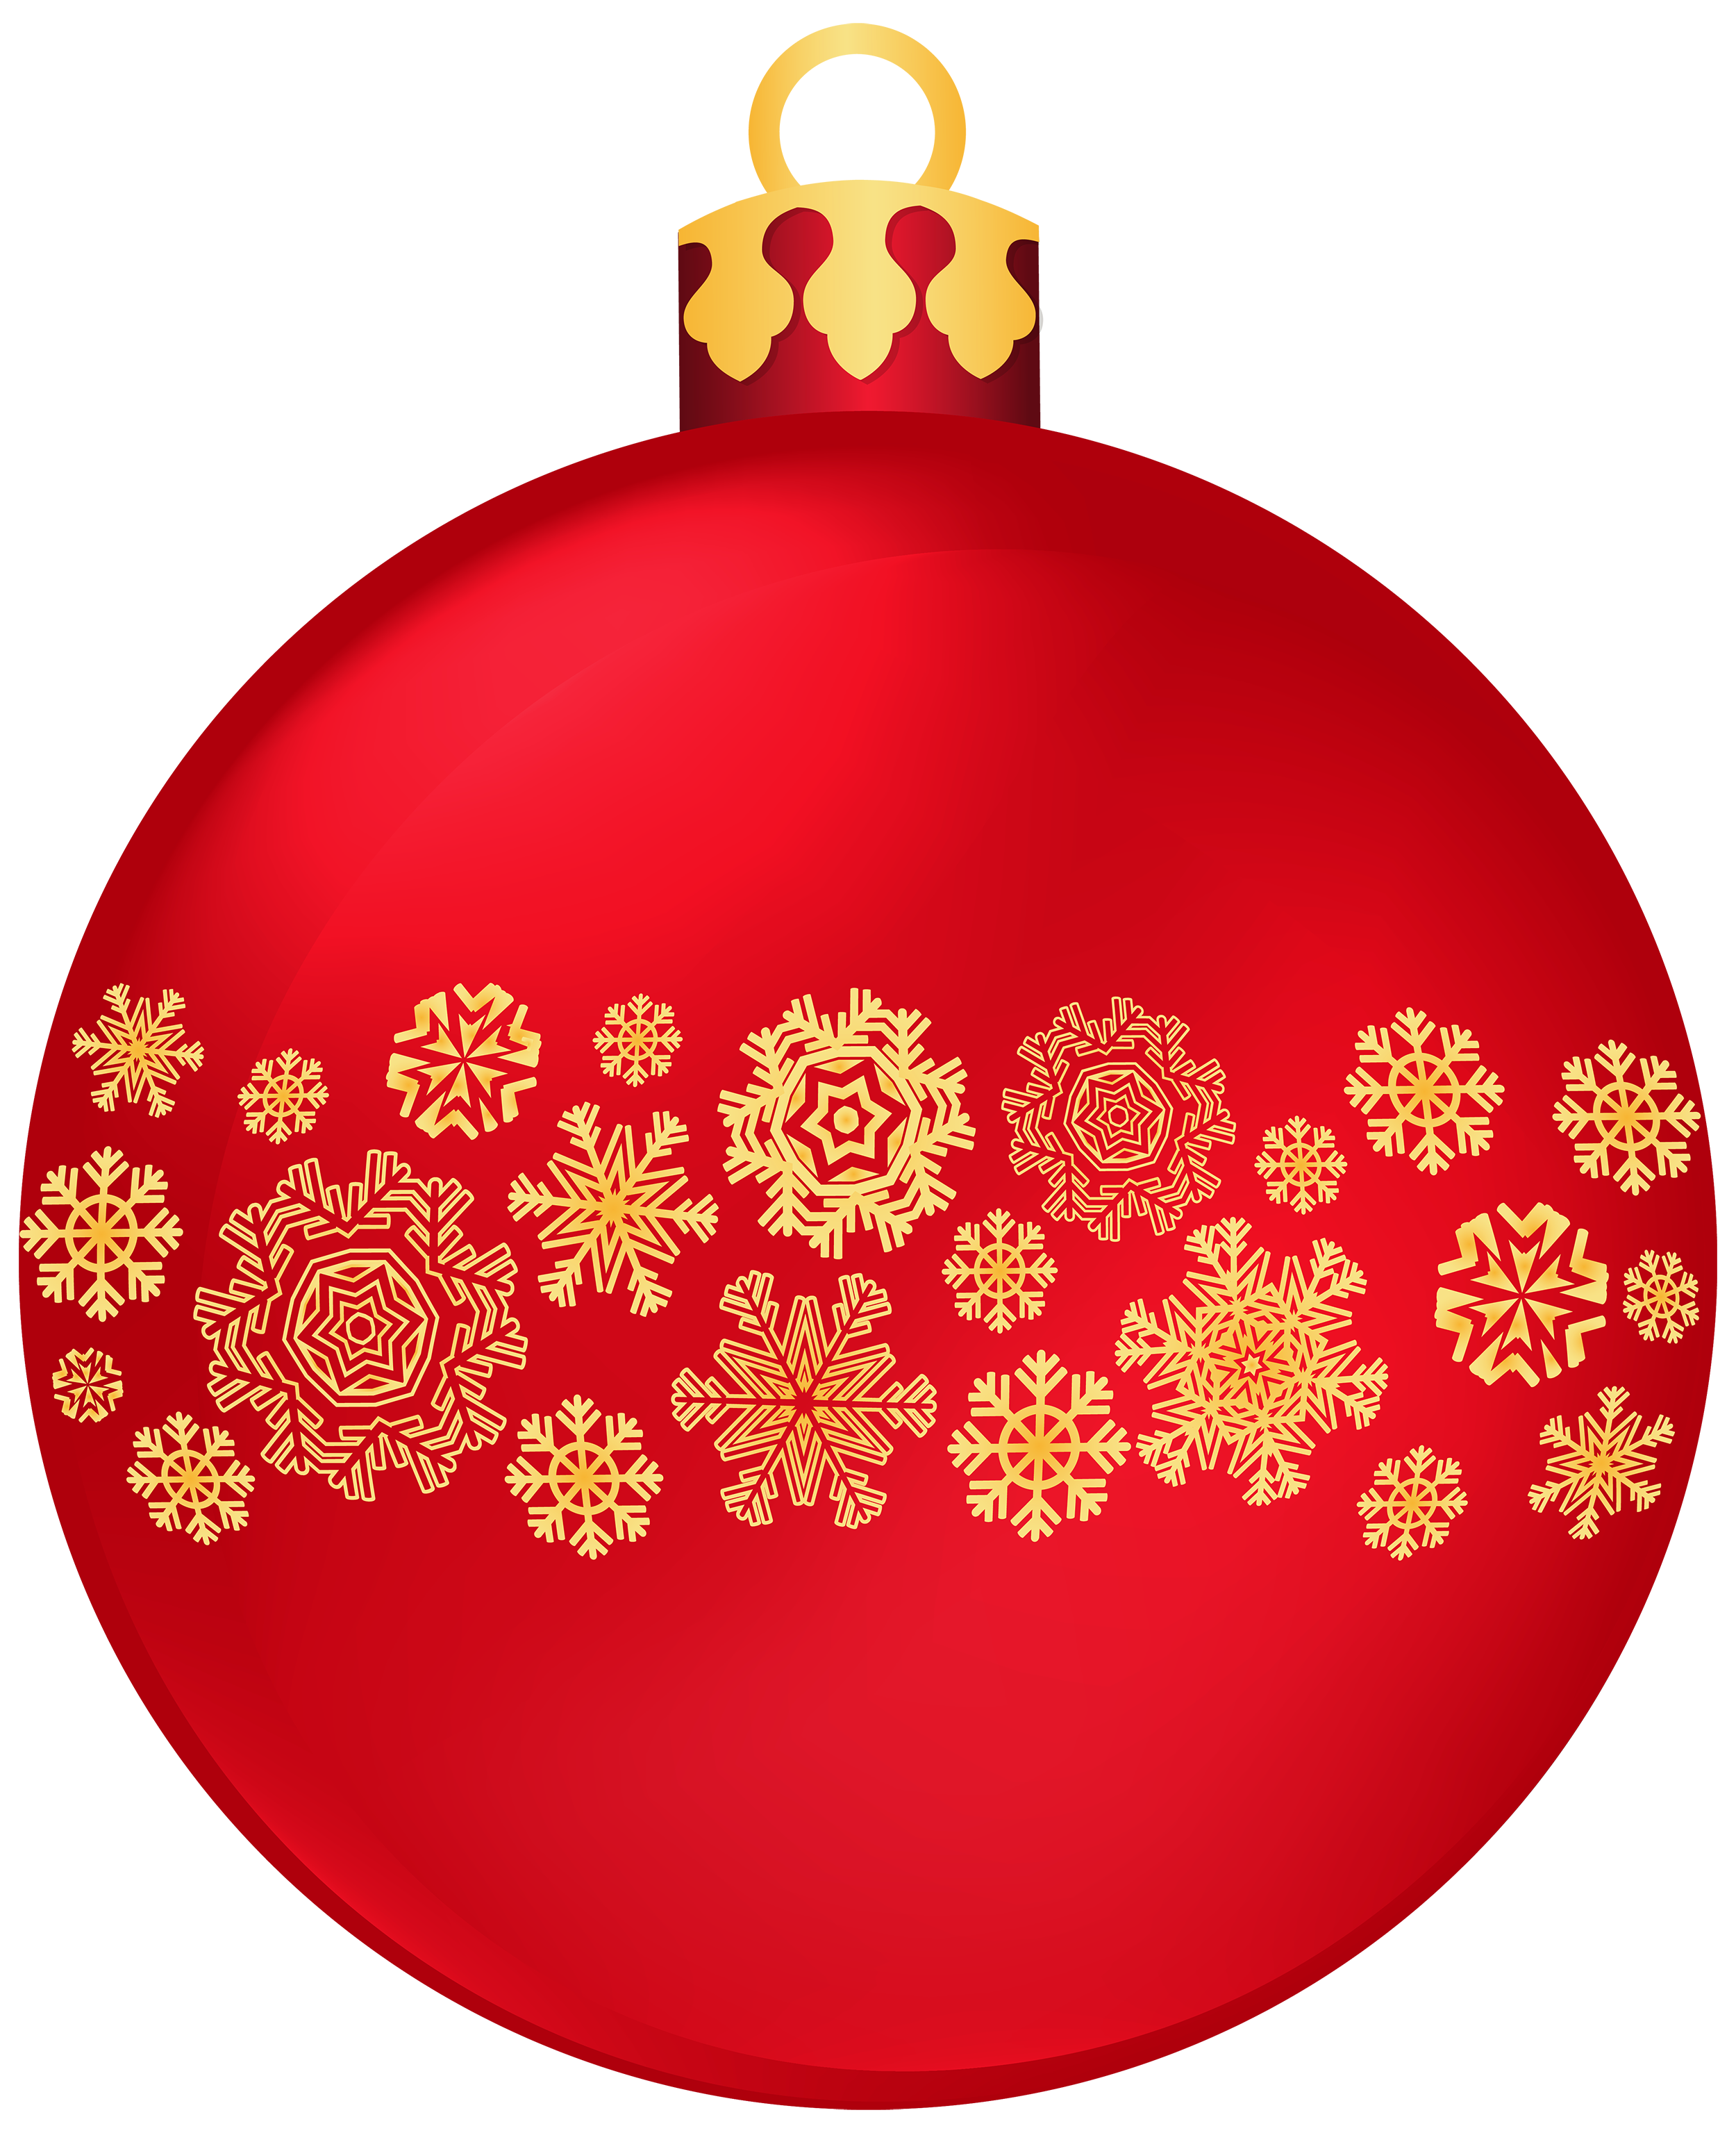 Snowflakes clipart circle. Red christmas ball with